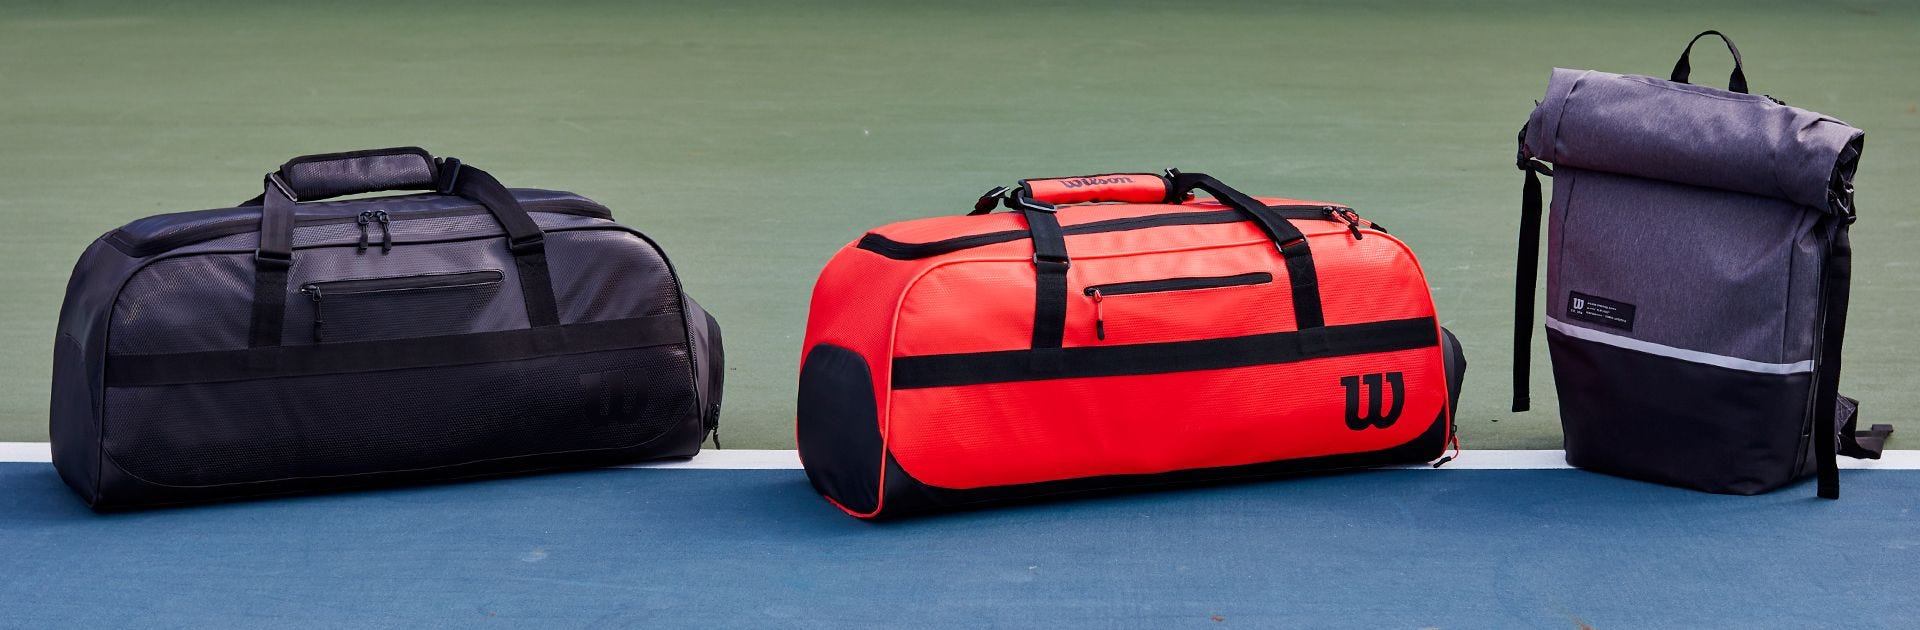 Lifestyle bags on tennis court